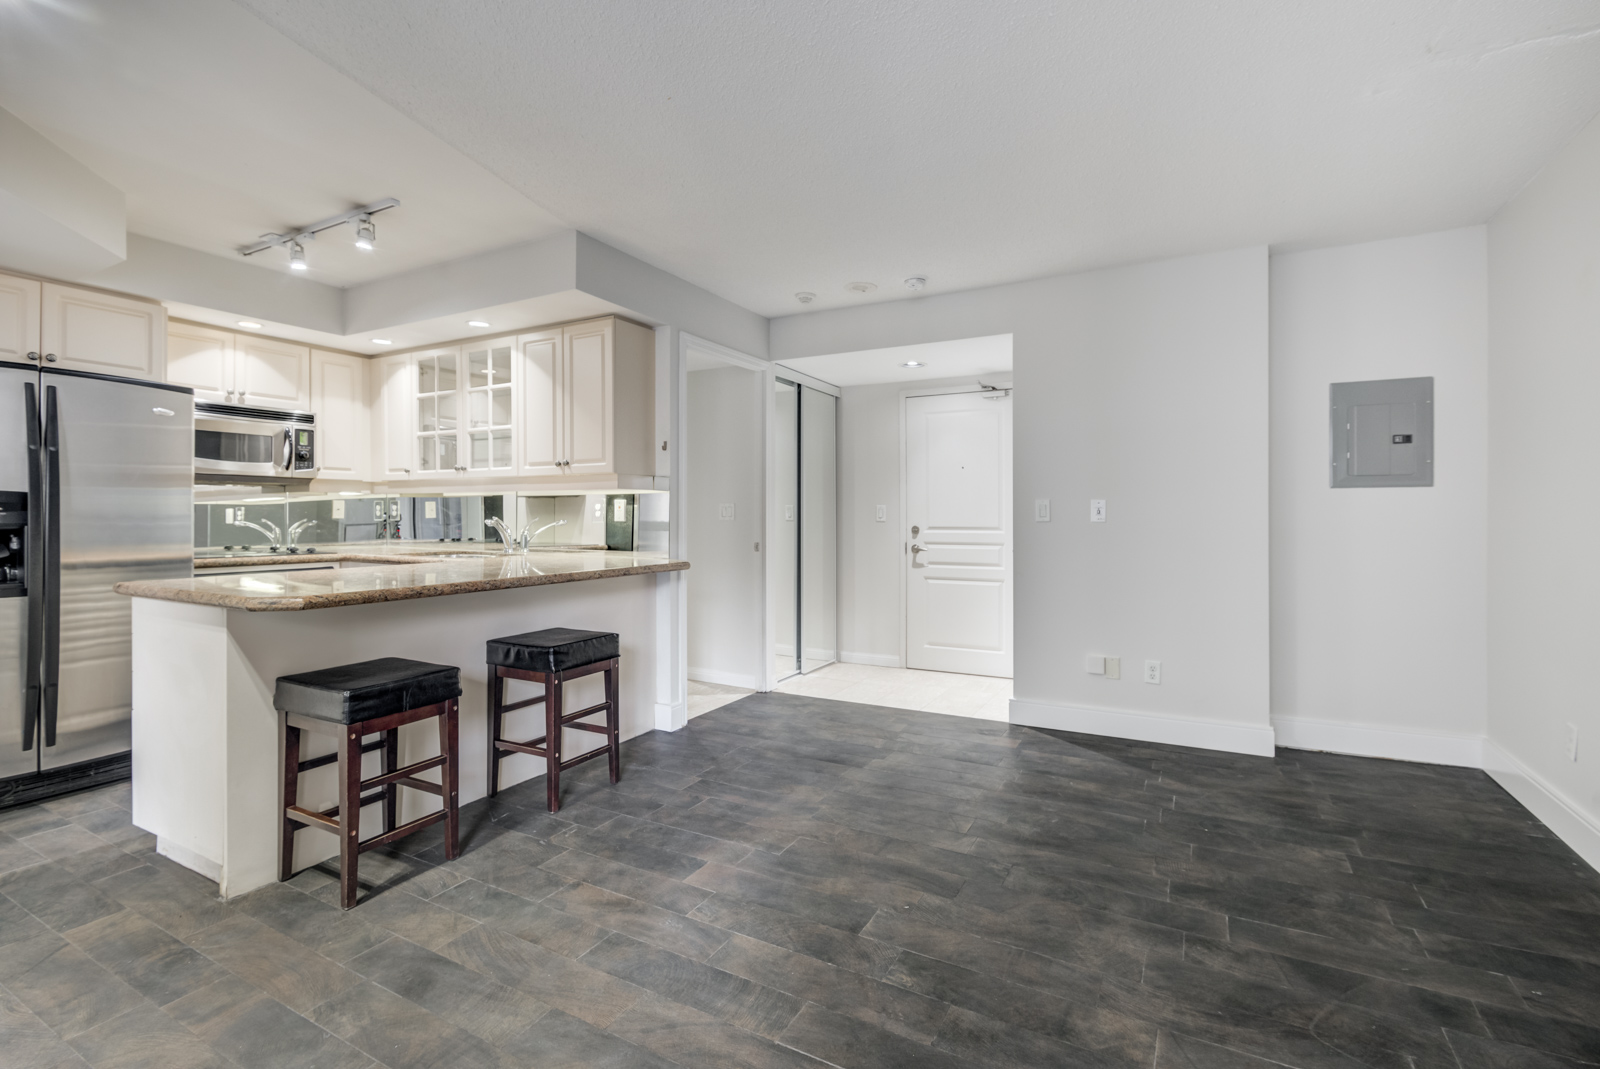 Empty condo with newly painted gray walls.